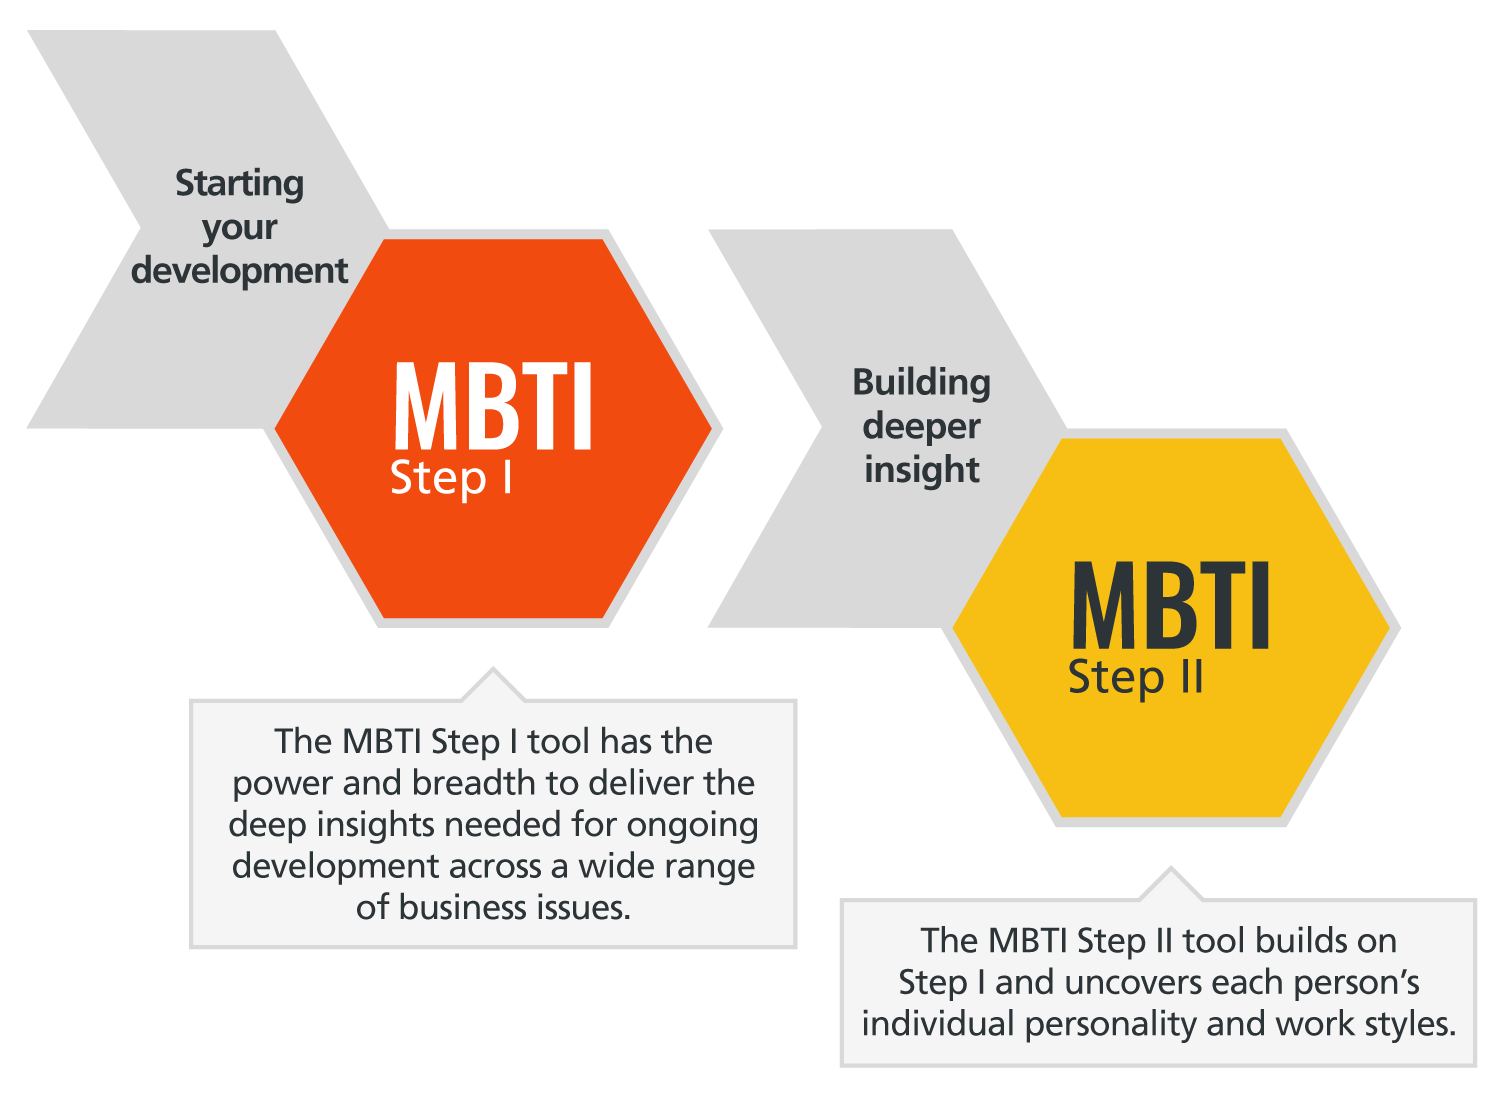 Improve communication with MBTI